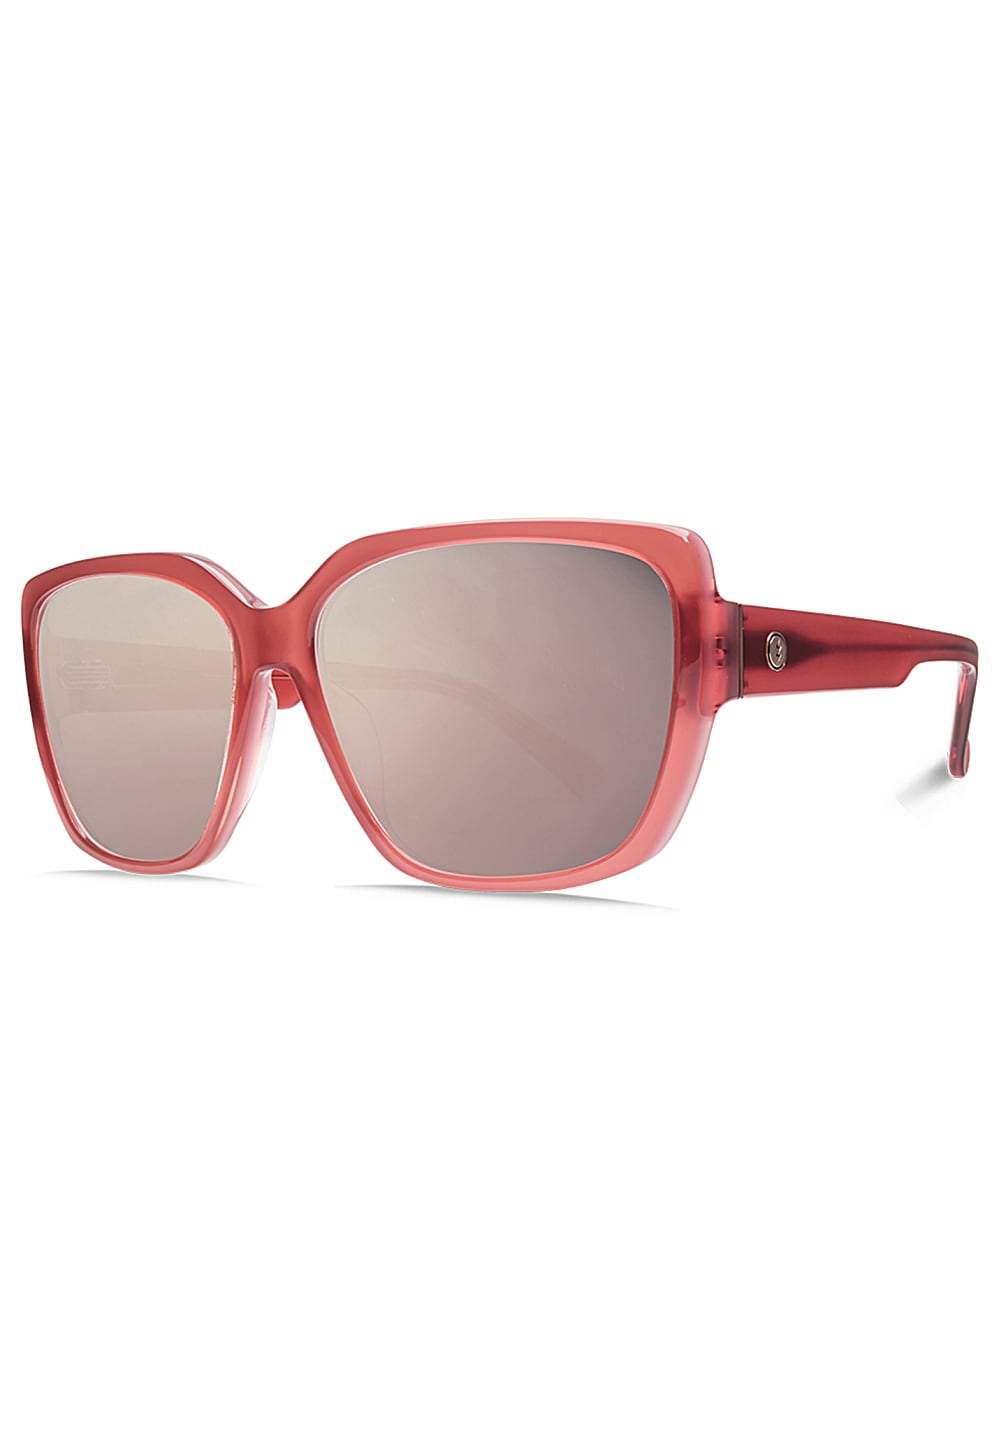 Sonnenbrillen für Frauen - Electric Honey Bee Sonnenbrille für Damen Rot  - Onlineshop Planet Sports